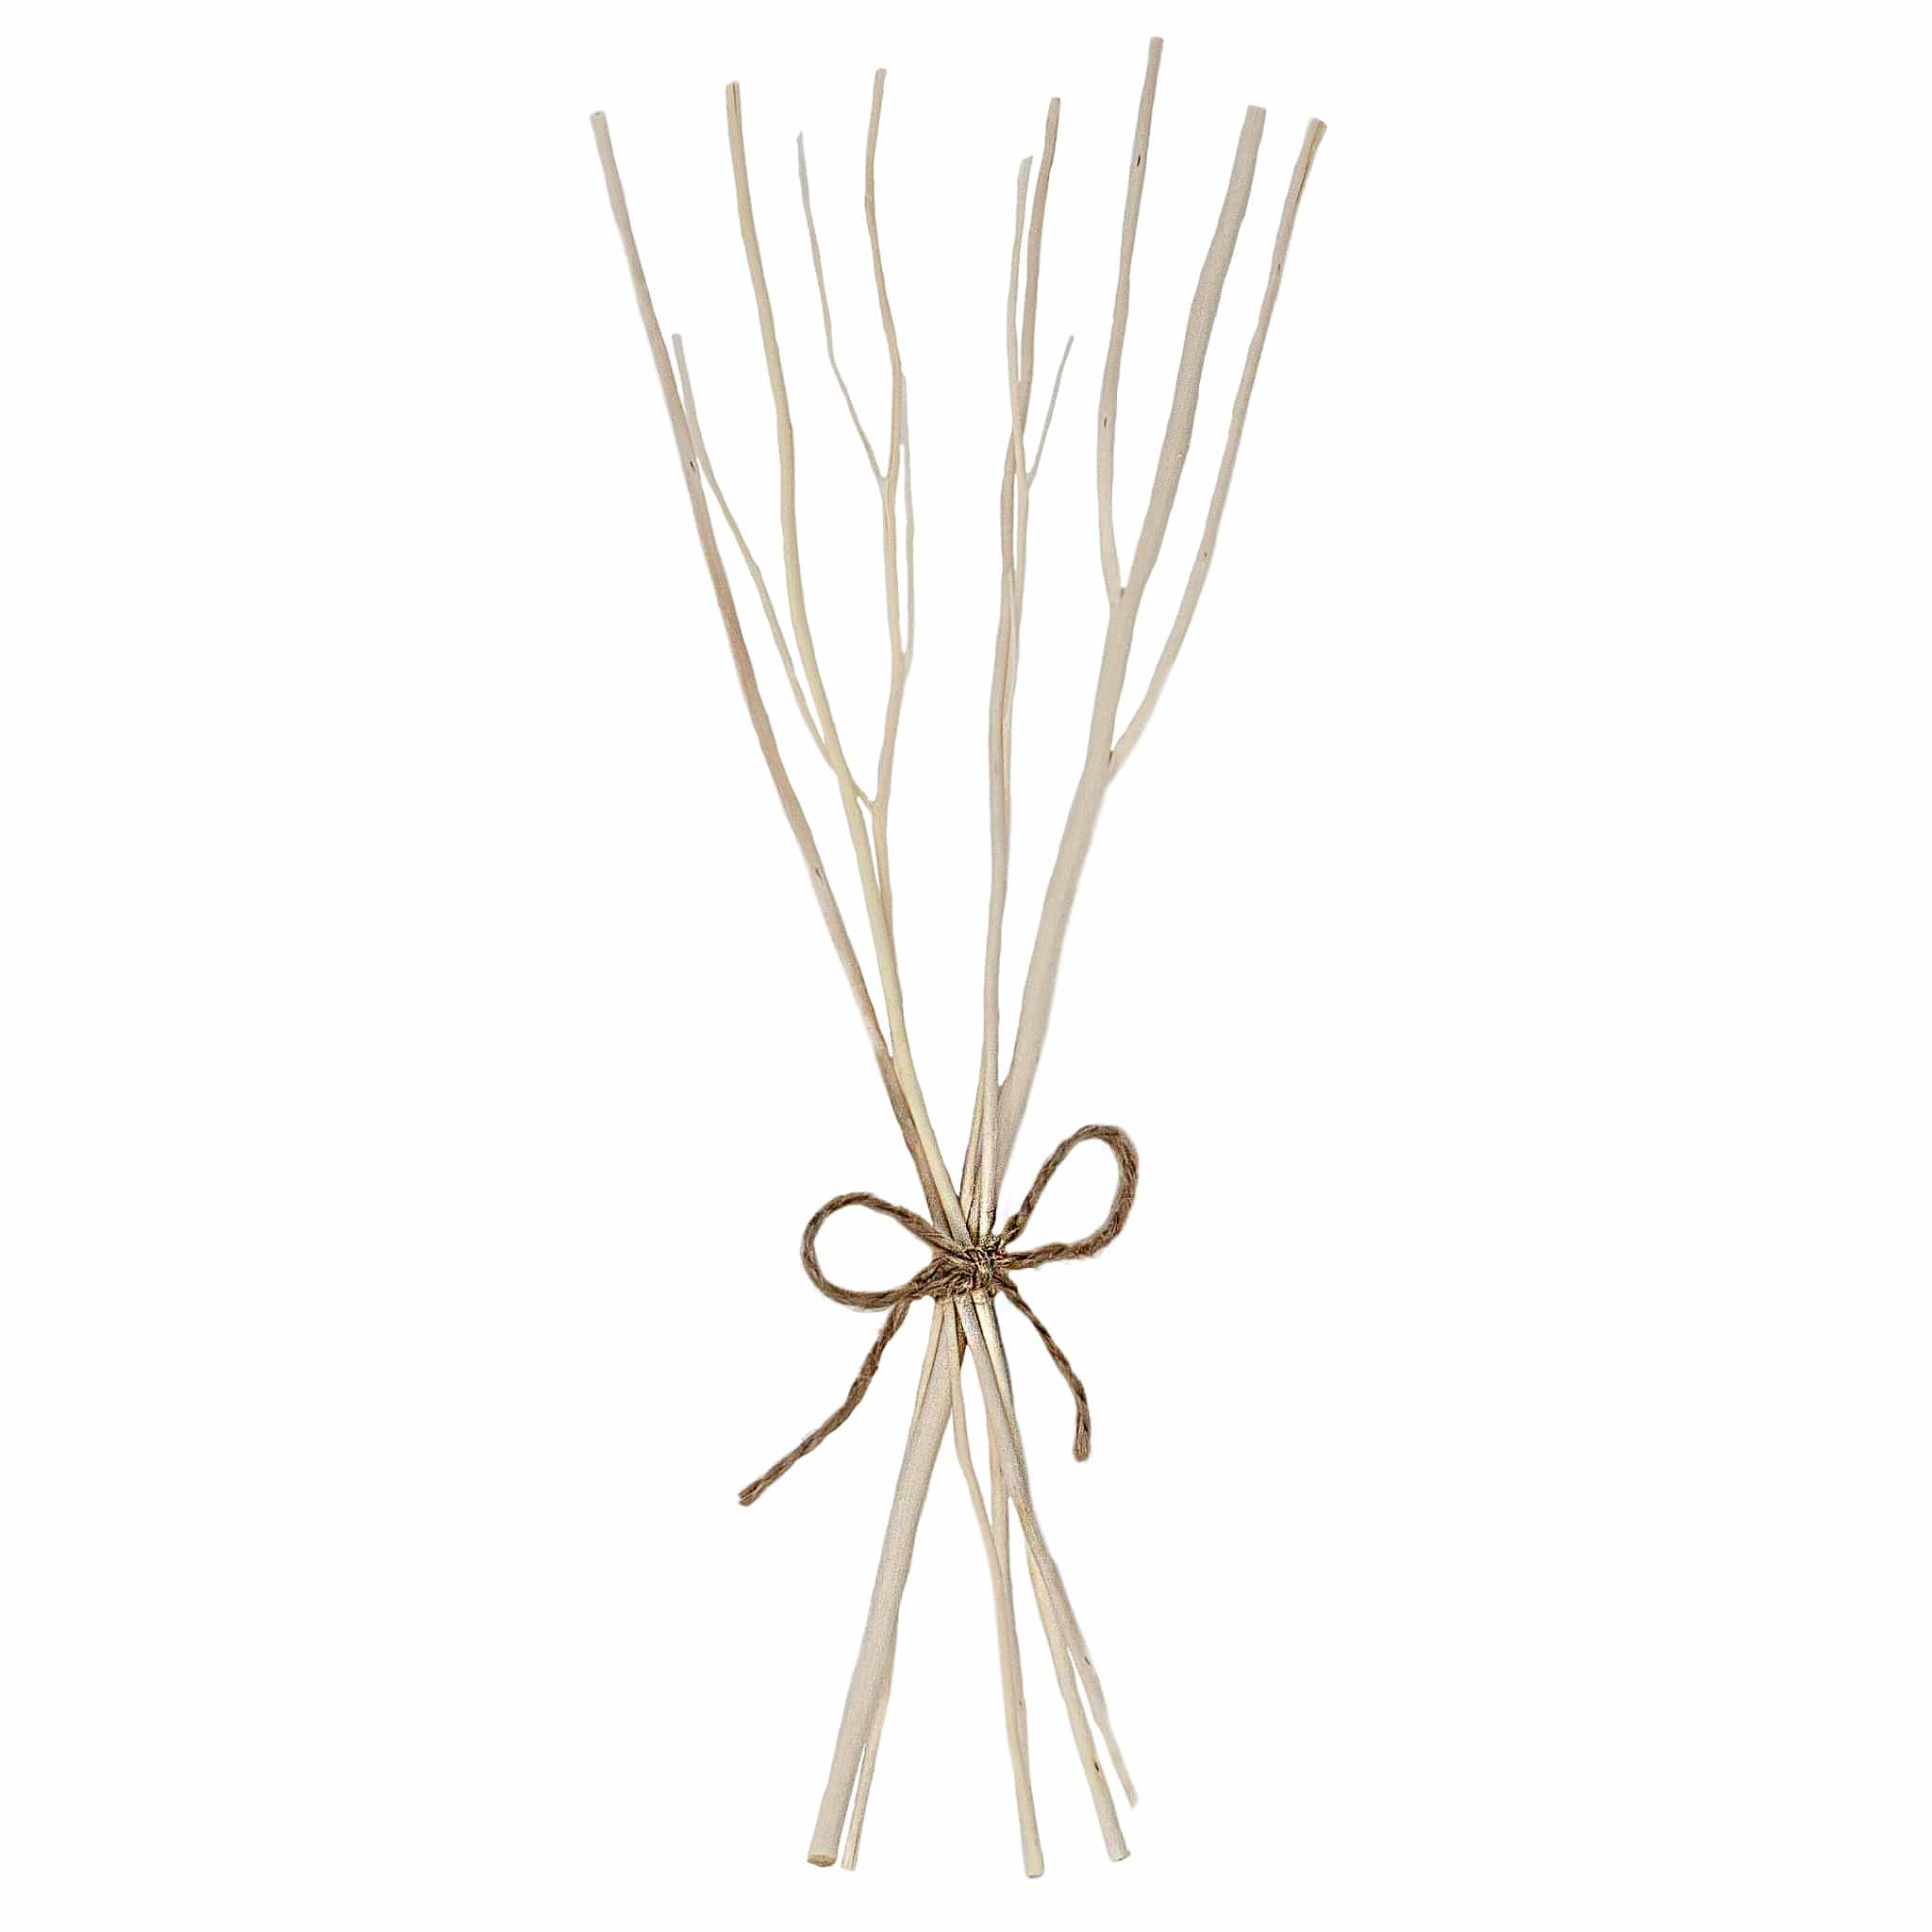 Room Diffuser replacemnt twigs reeds by Twoodle Co Natural Home Scents